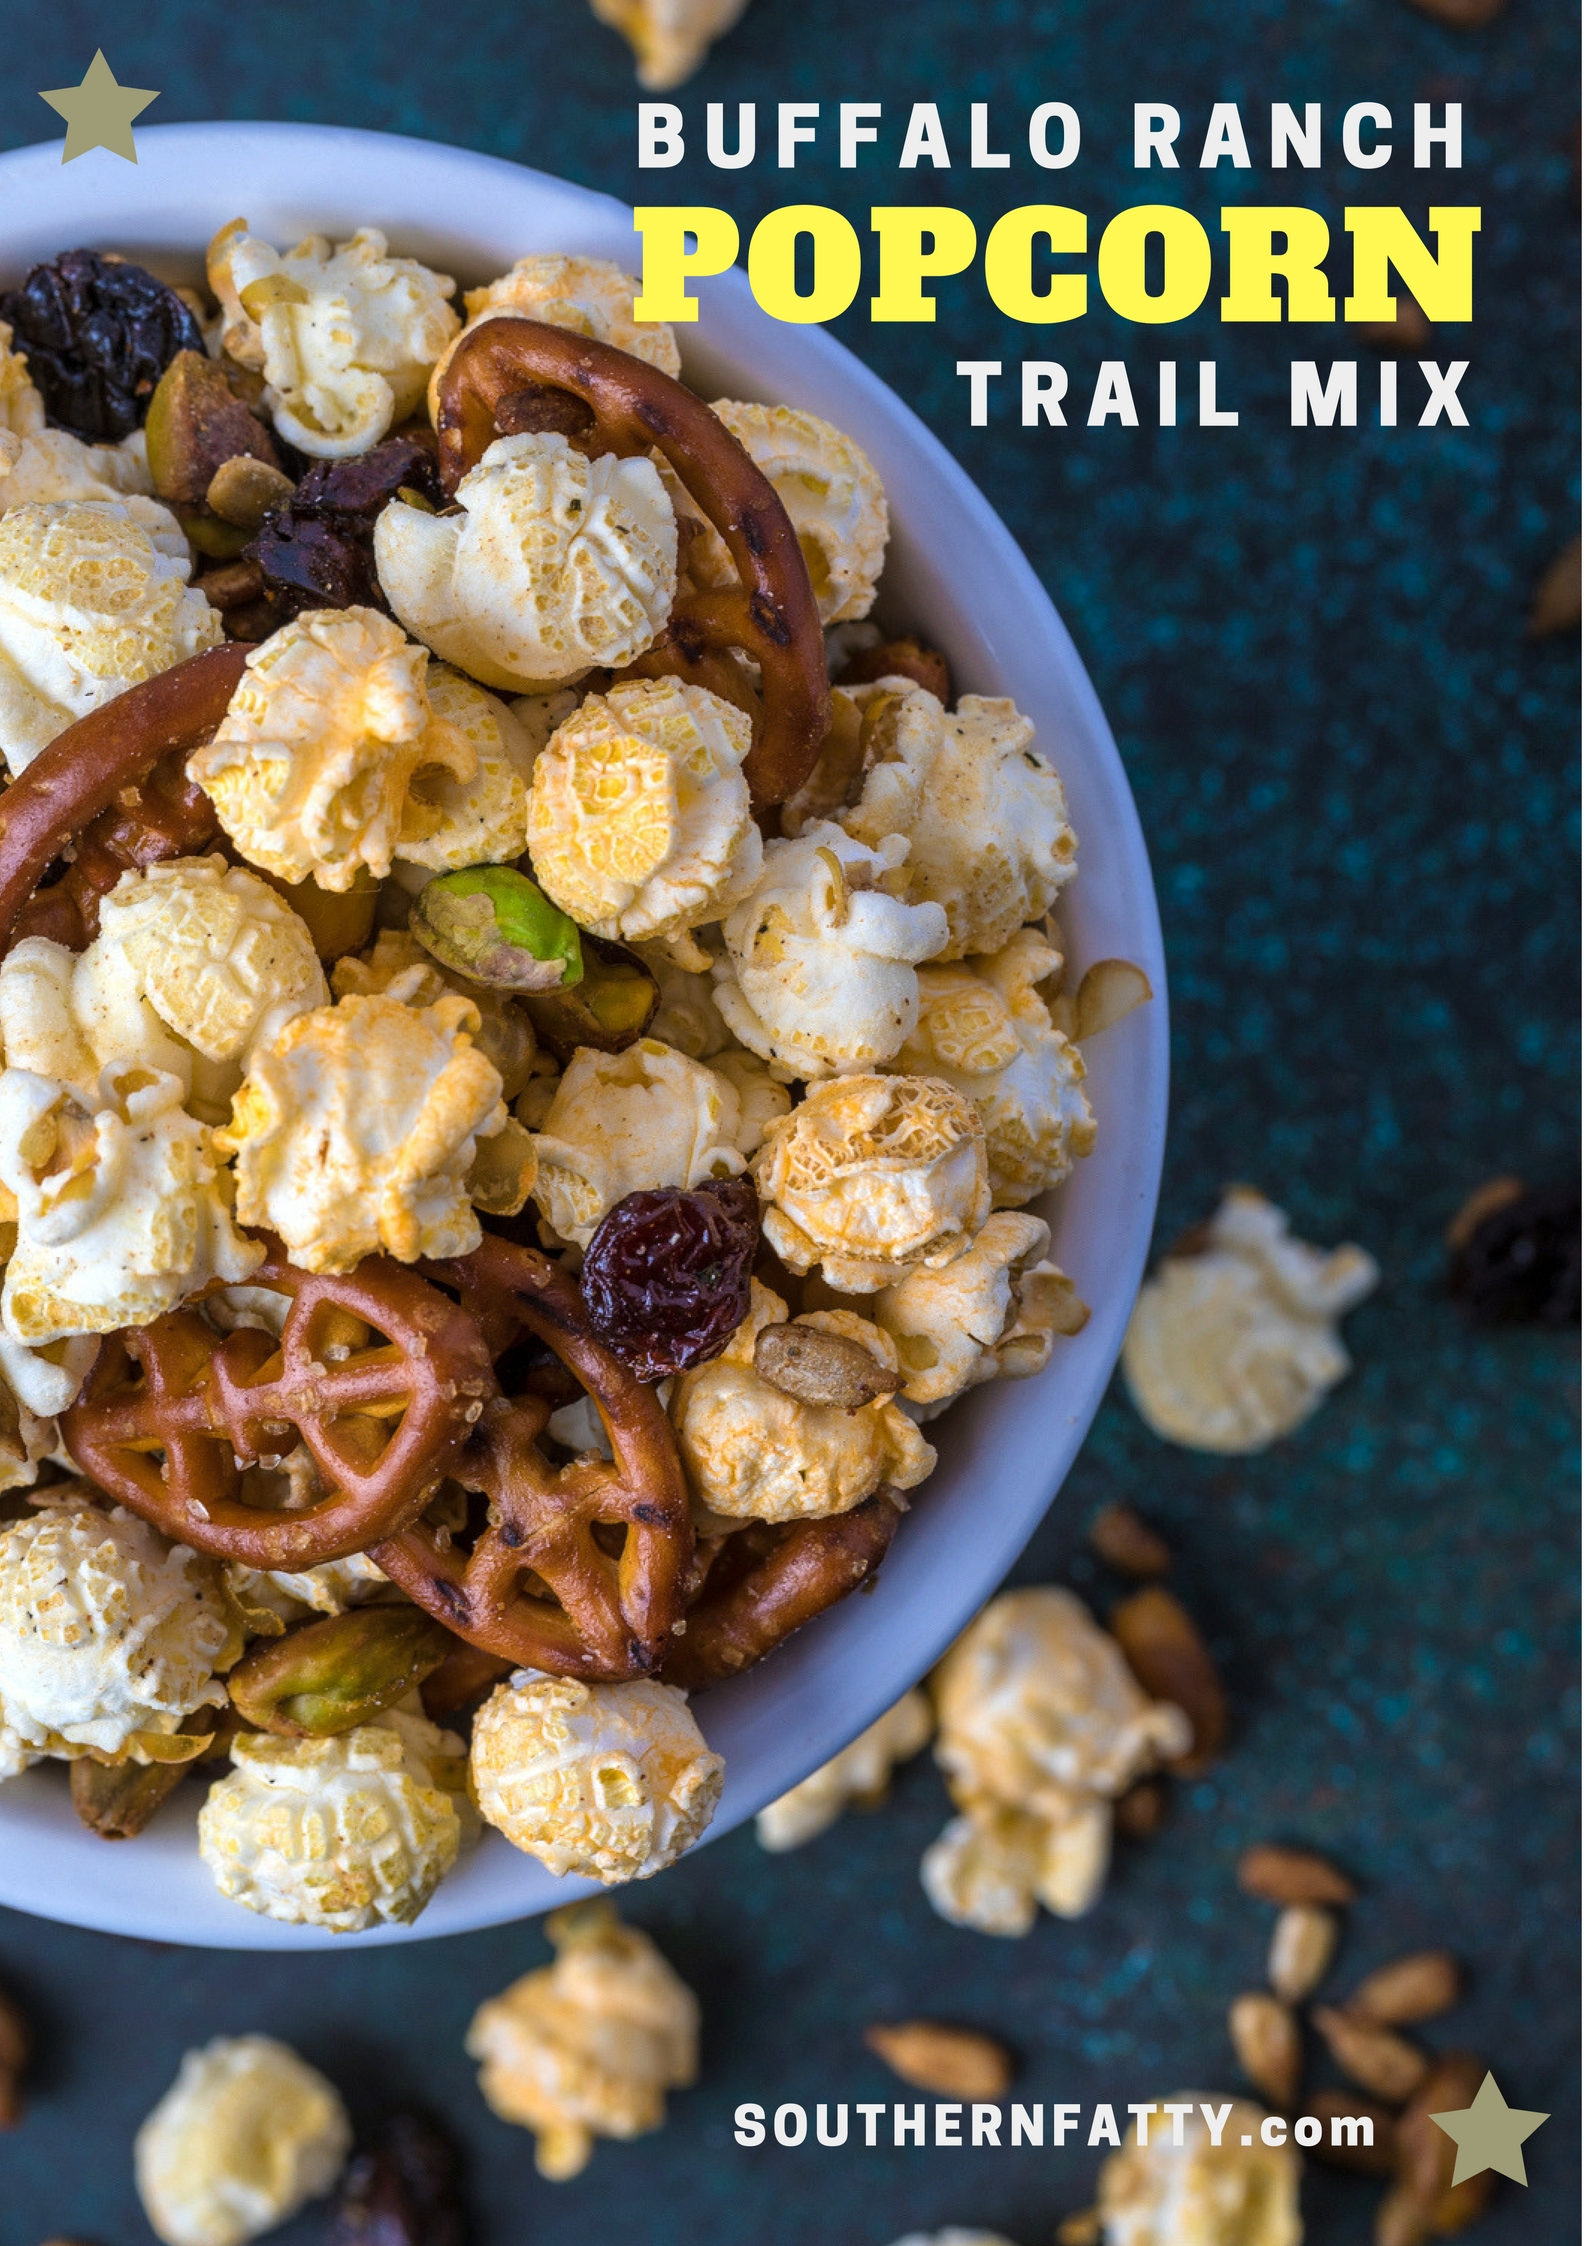 Buffalo Ranch Popcorn Trail Mix Recipe from SouthernFatty.com.